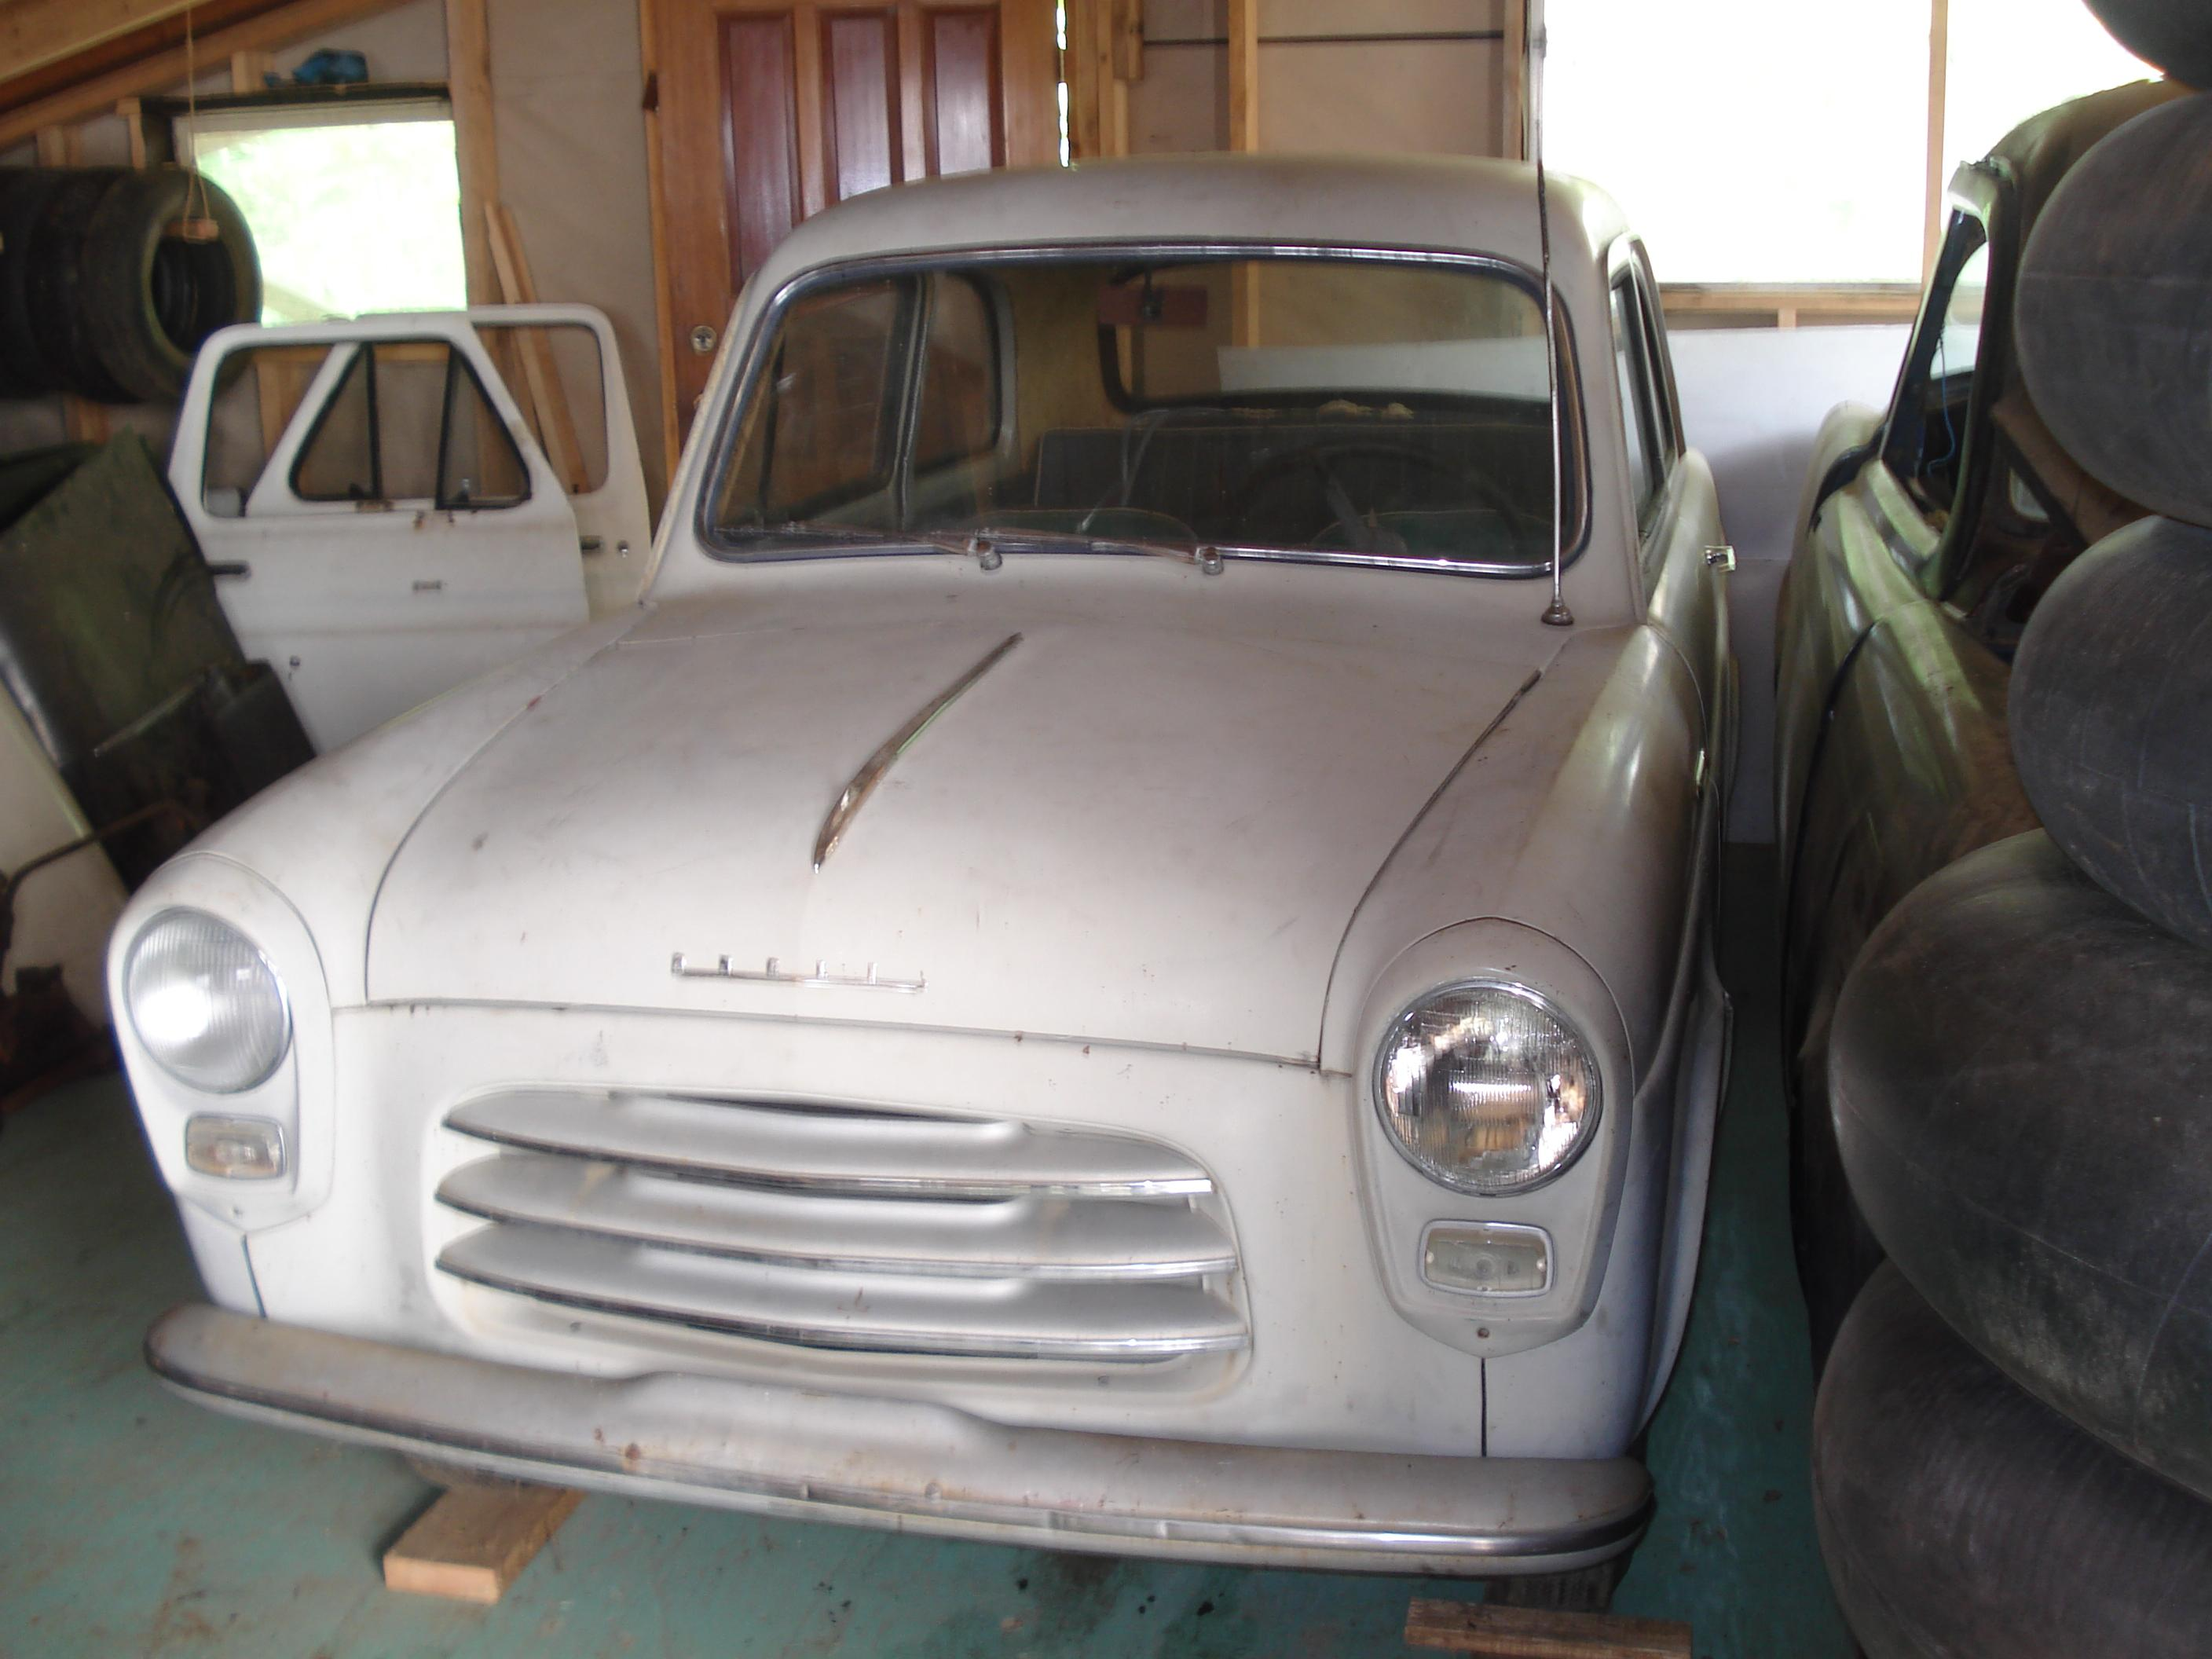 dlelliot 1951 Ford Anglia Specs, Photos, Modification Info